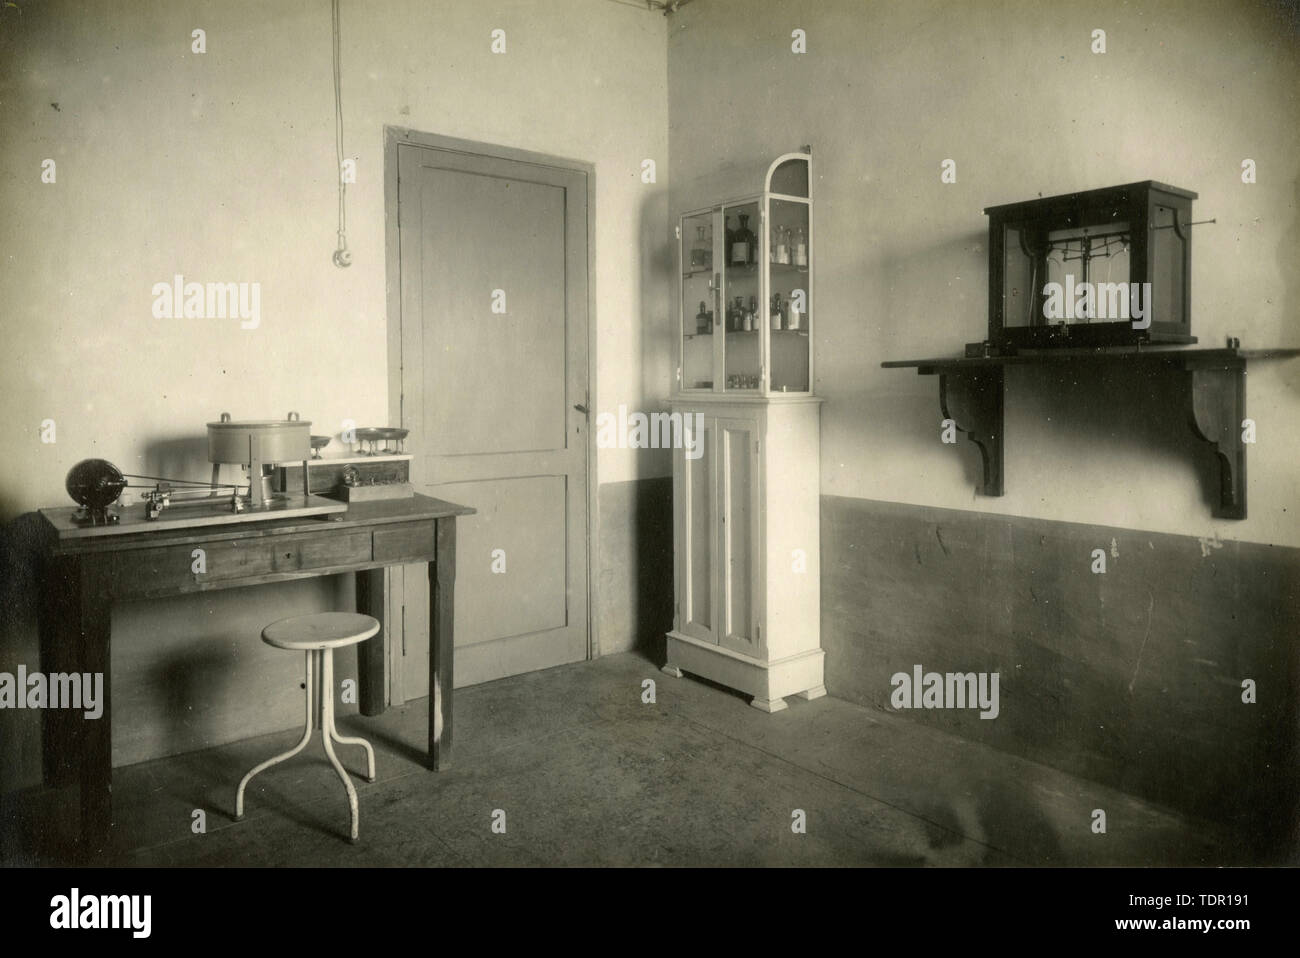 Microscopy and Chemical Laboratory at the Air Force Medical Laboratory Montecelio, Rome, Italy 1920s - Stock Image